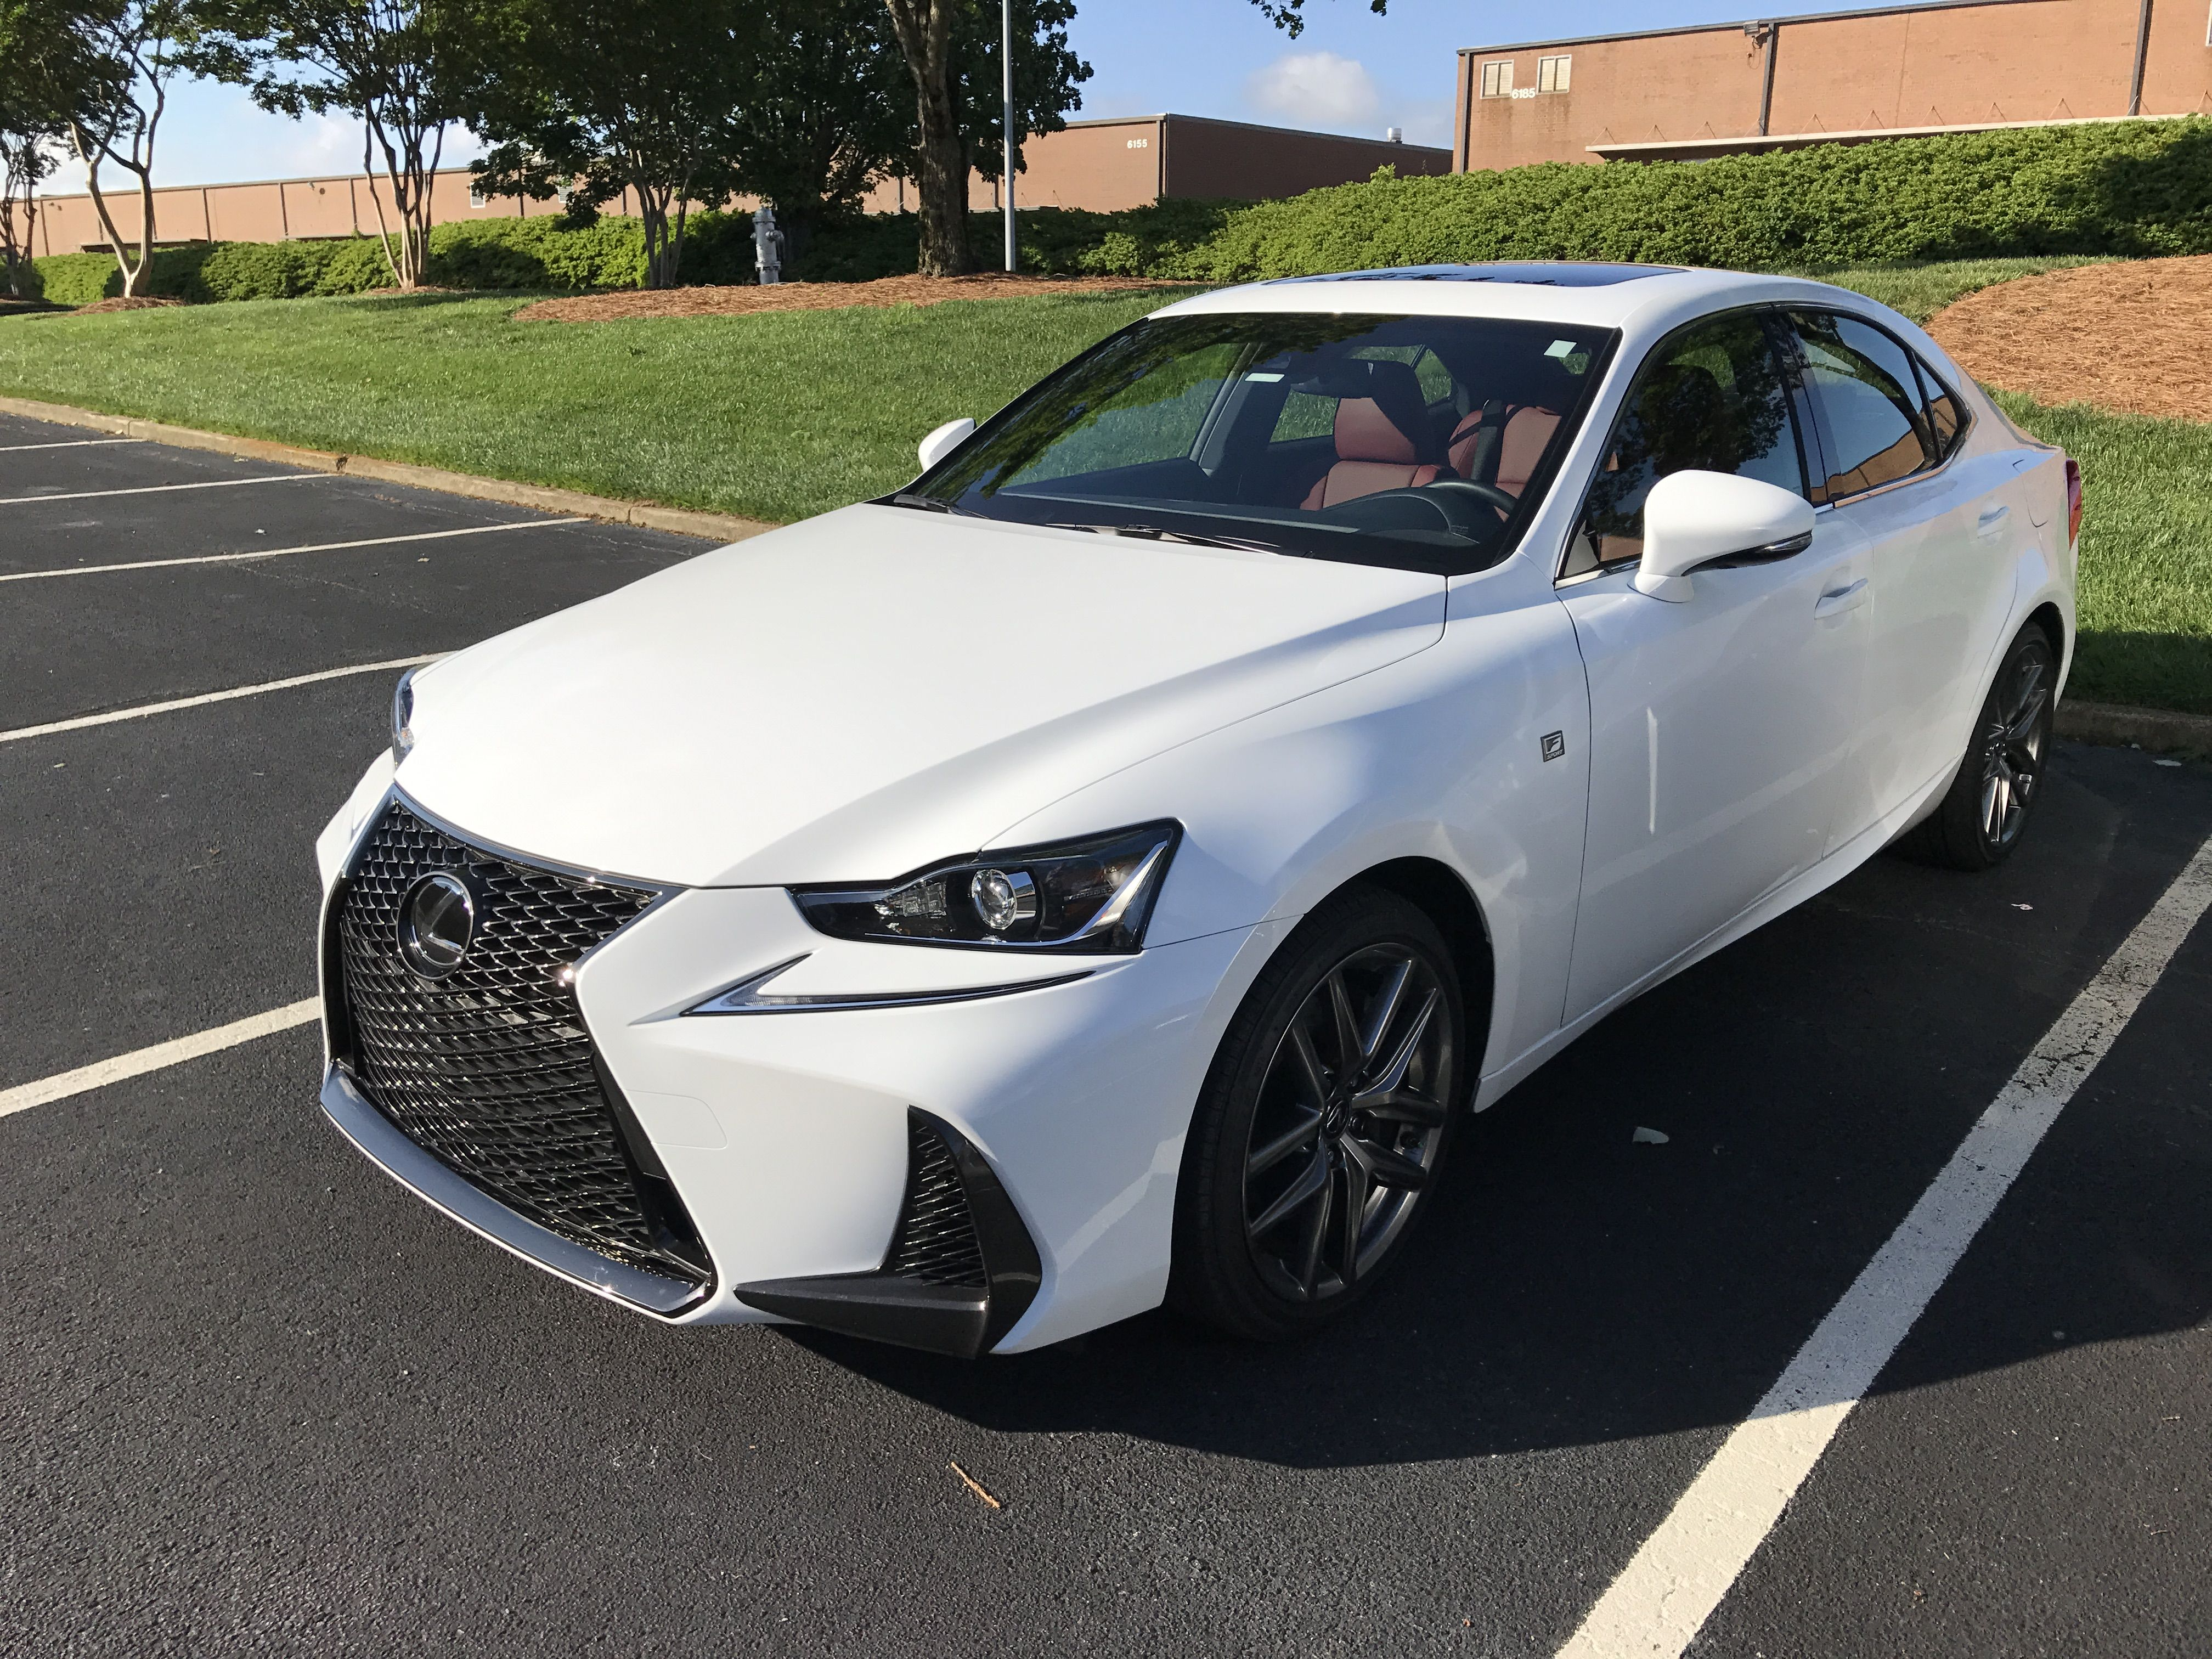 Just had the entire front of my 2017 Lexus IS350 FSport